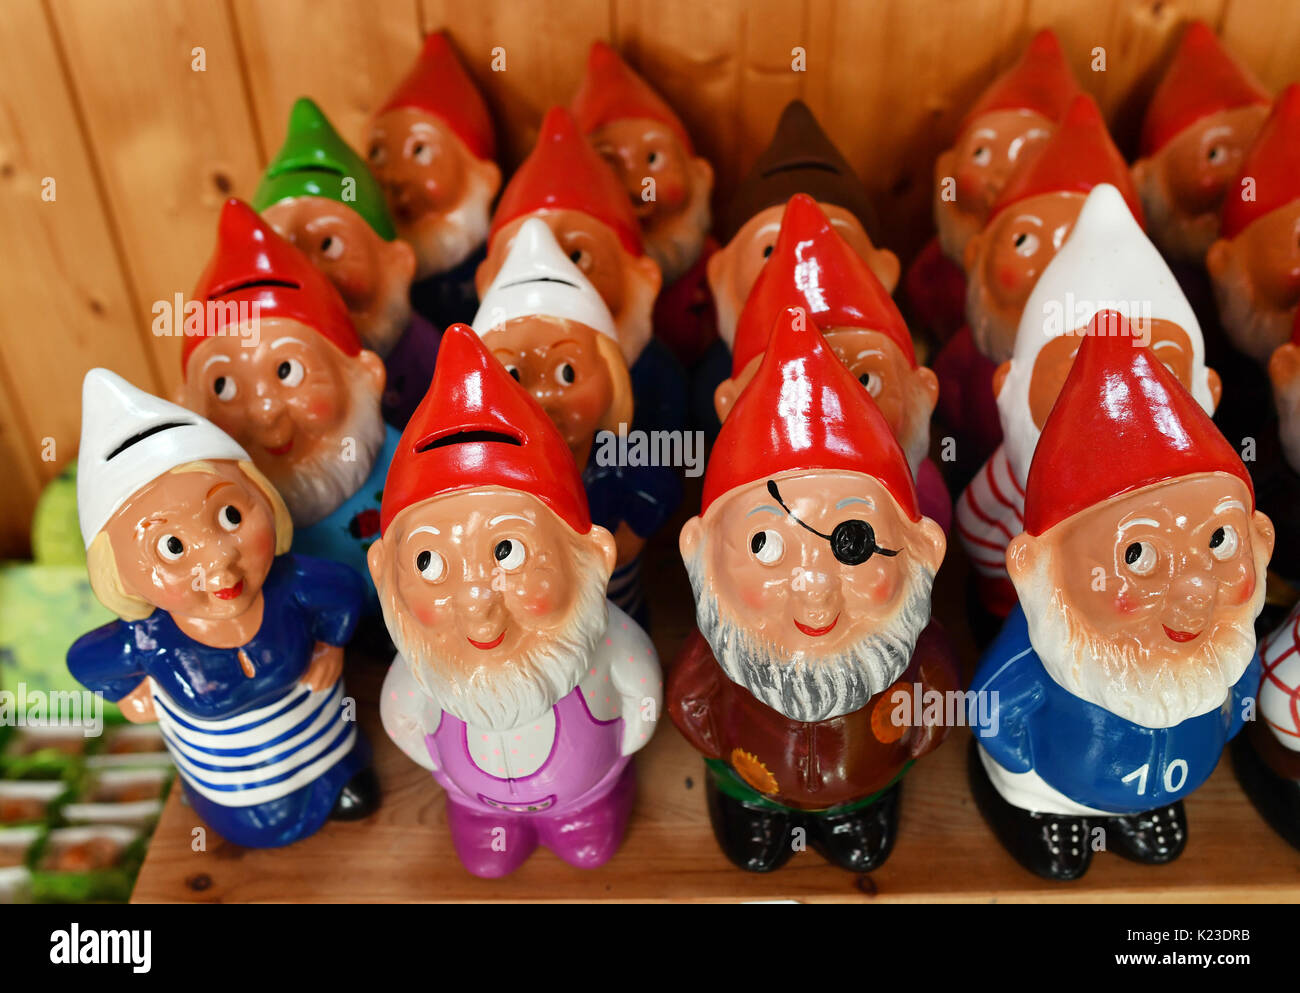 Graefenroda, Germany. 25th Aug, 2017. Garden gnomes, photographed at the garden gnome manufactory in Graefenroda, Stock Photo